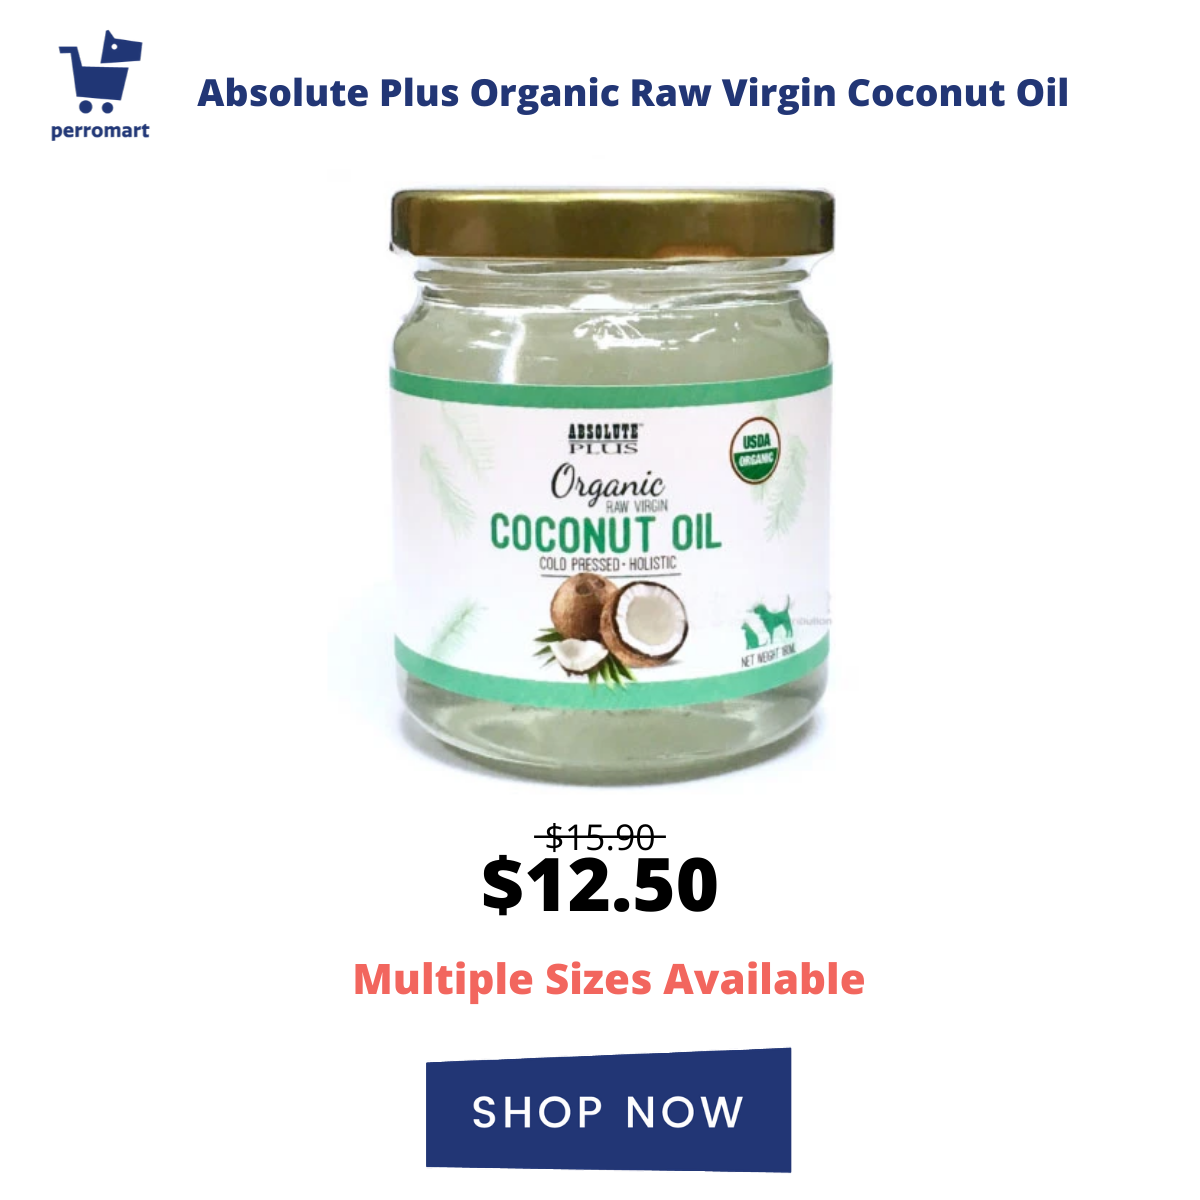 Absolute Plus Organic Raw Virgin Coconut Oil (2 Sizes)